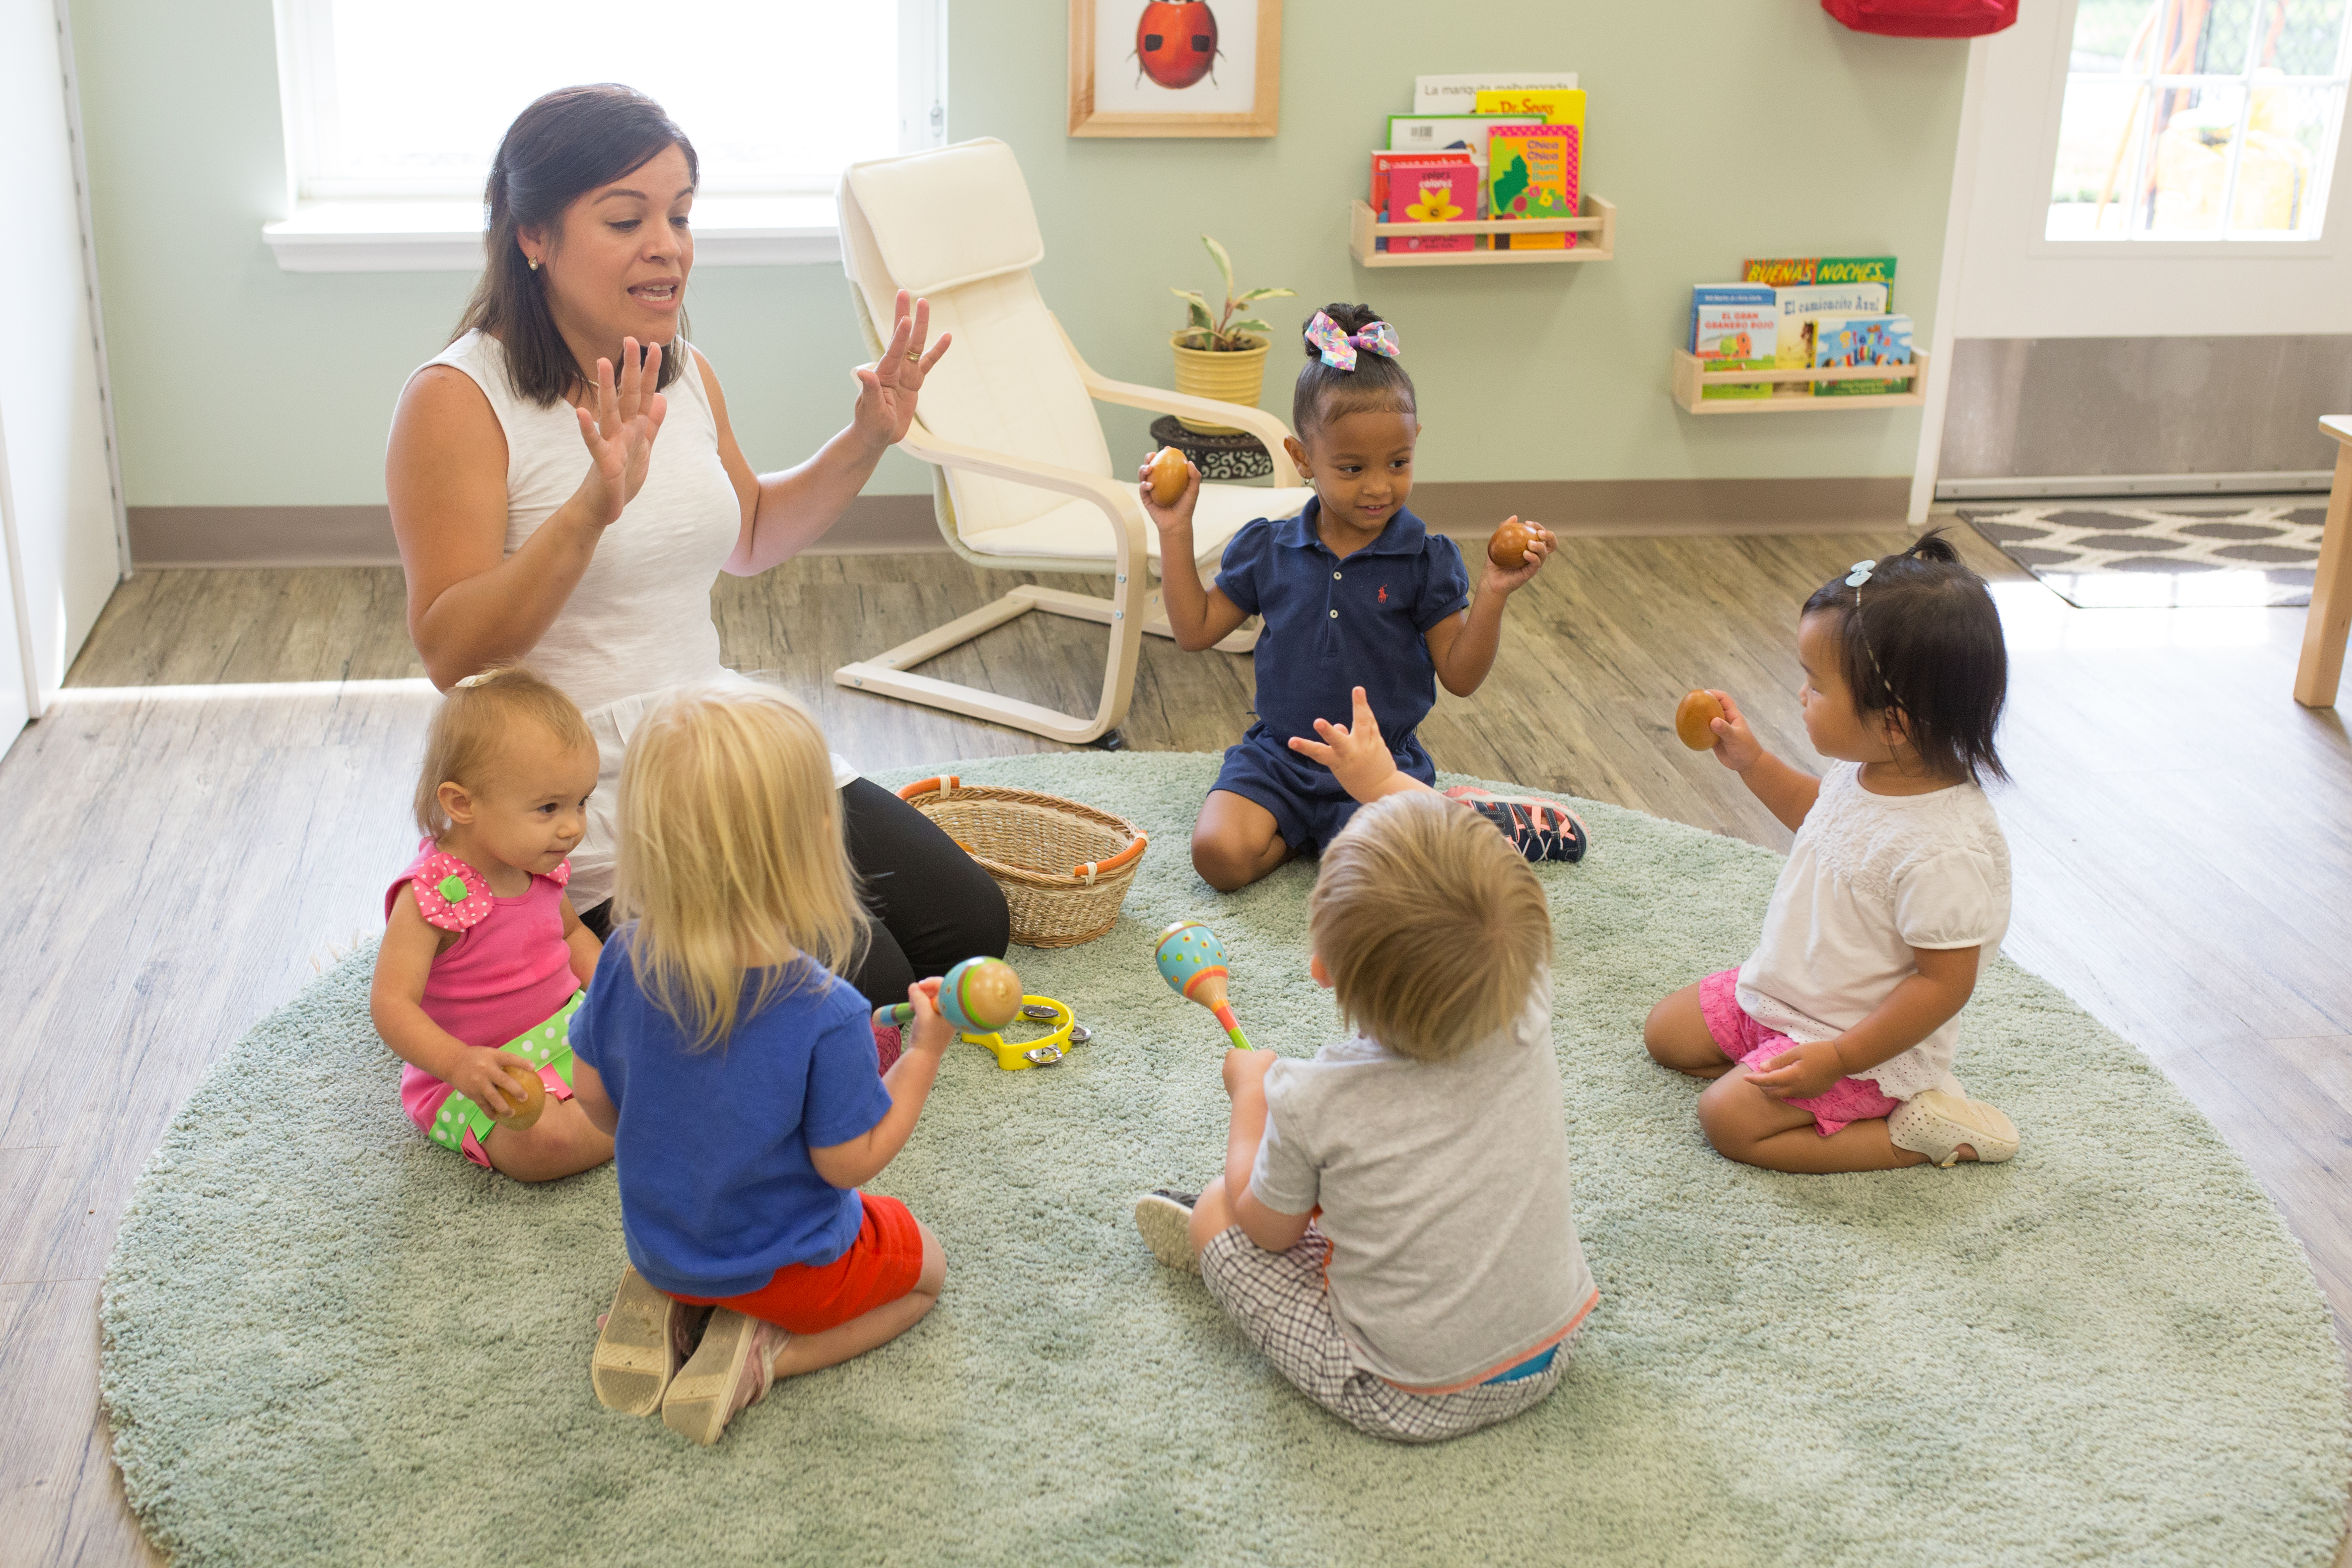 Montessori: A Practical Approach to Toddler Development